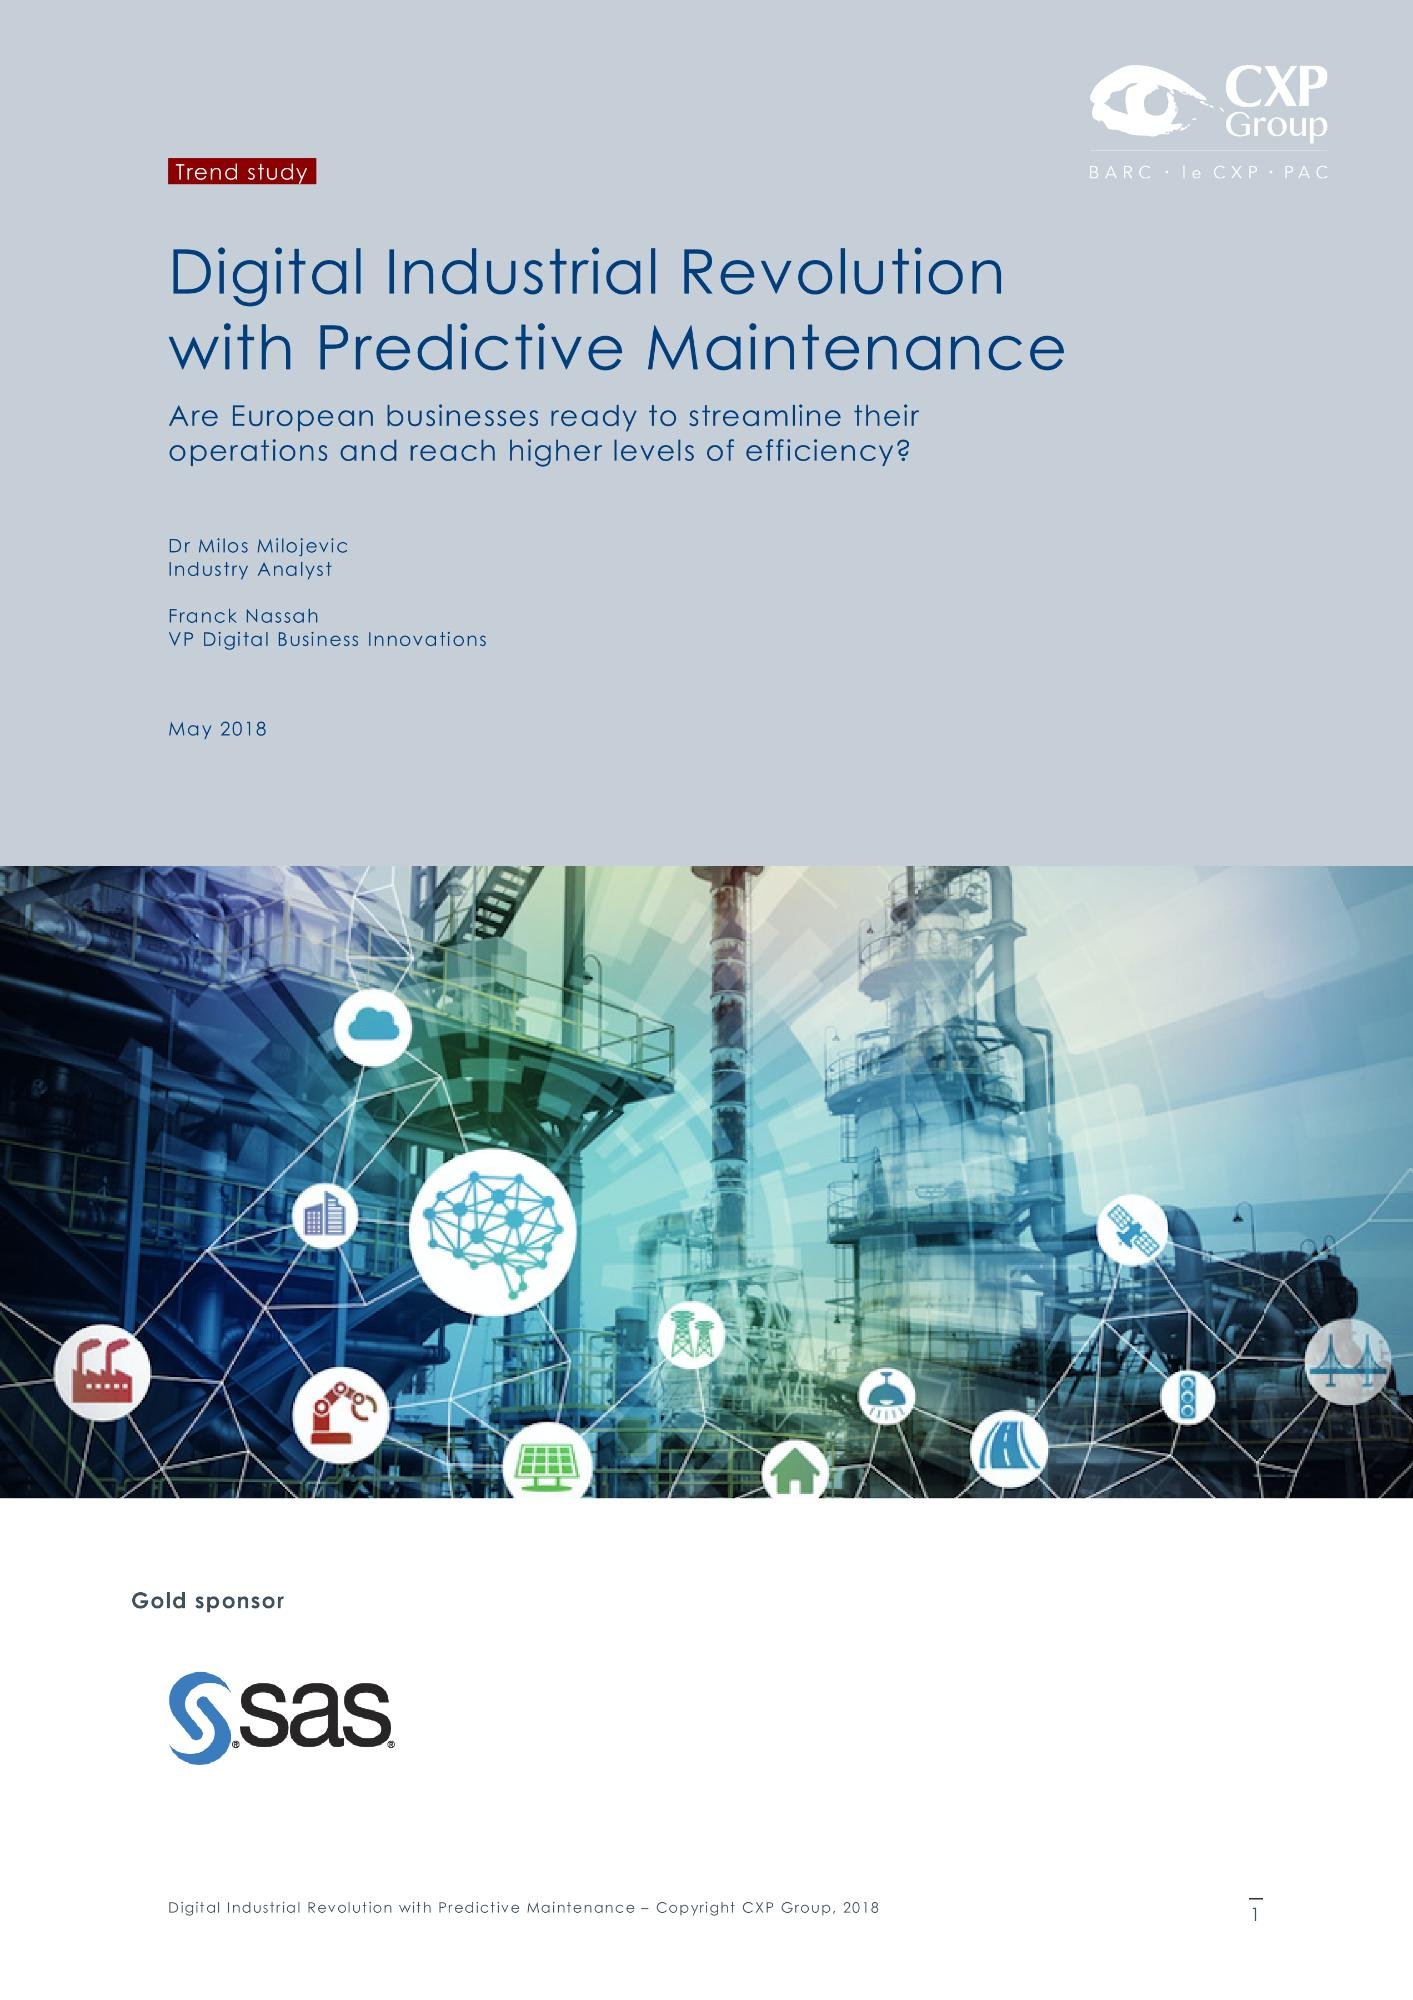 Digital Industrial Revolution with Predictive Maintenance